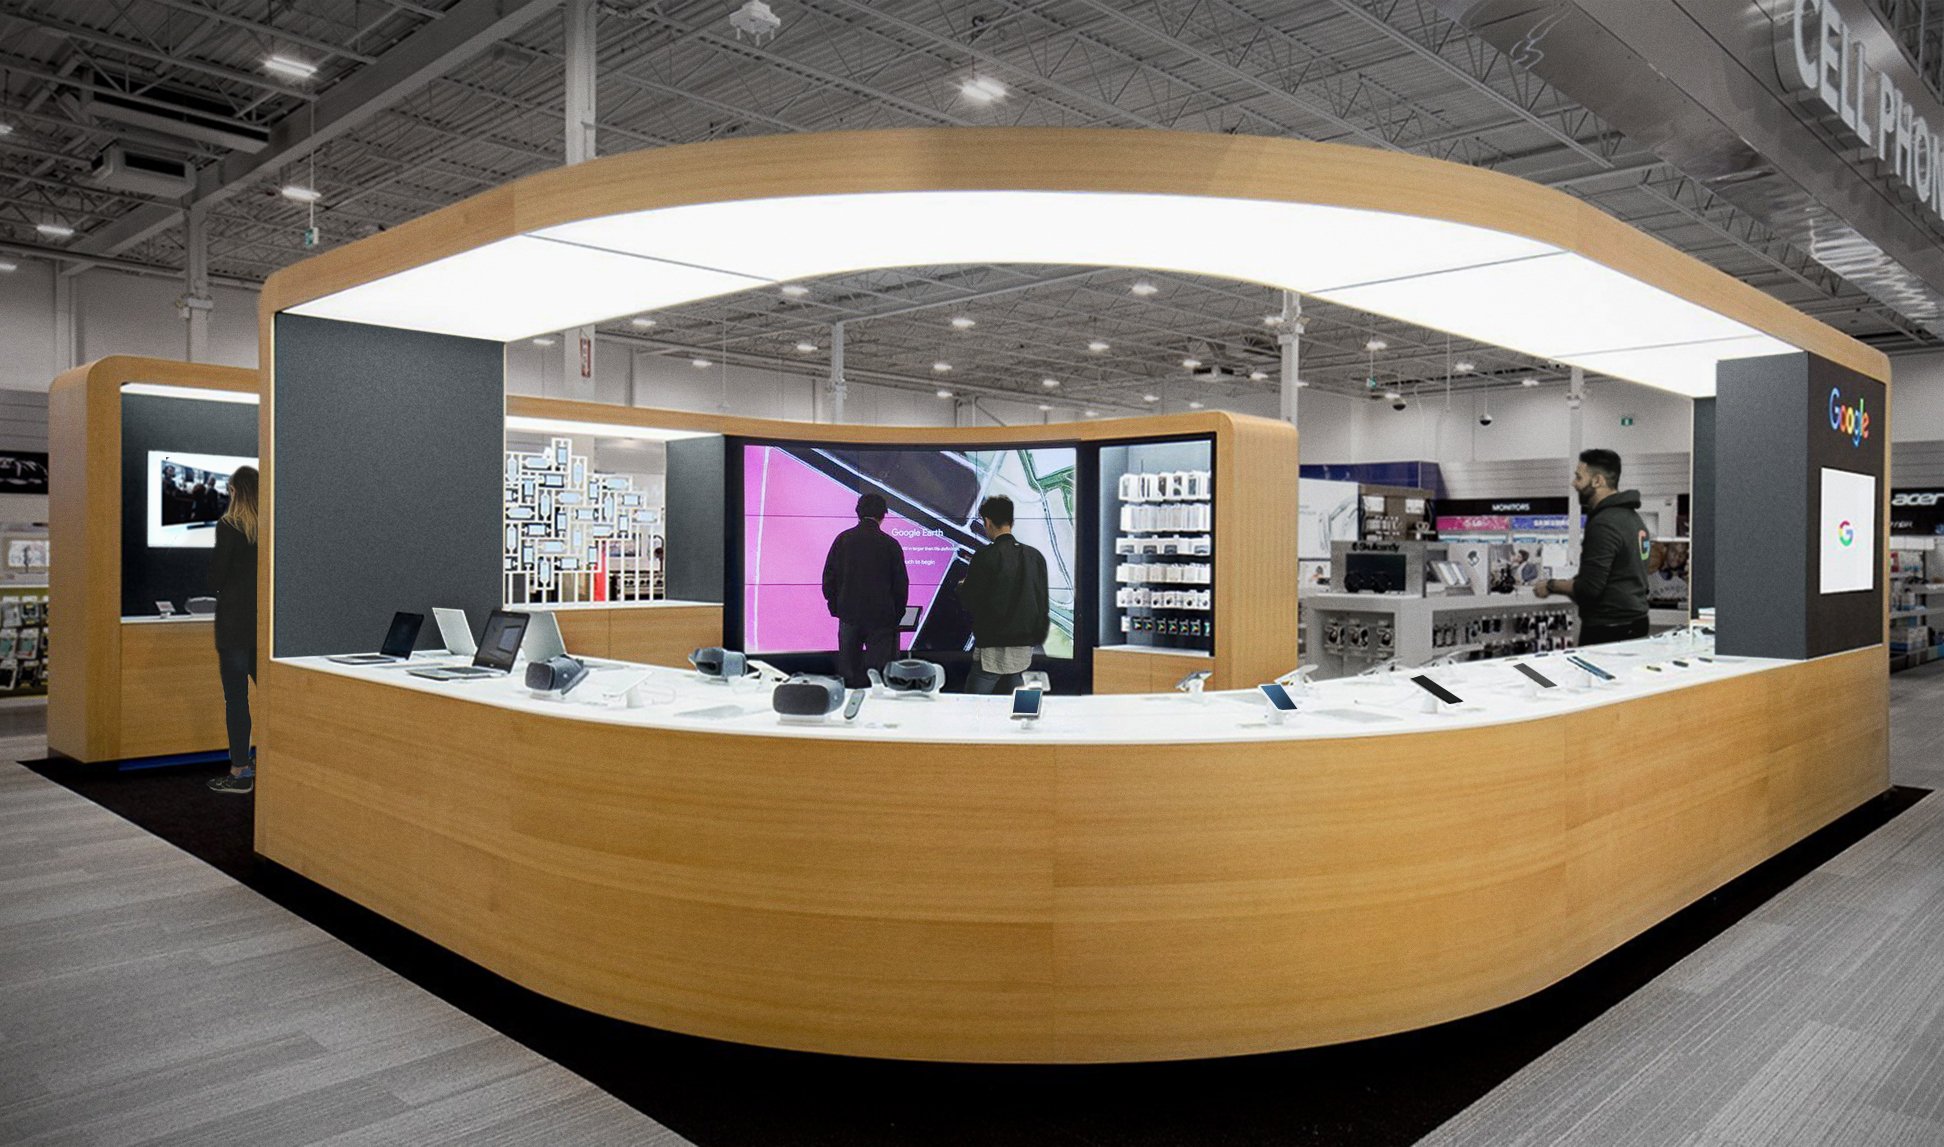 Google Shop counter with a display of many different technology products.